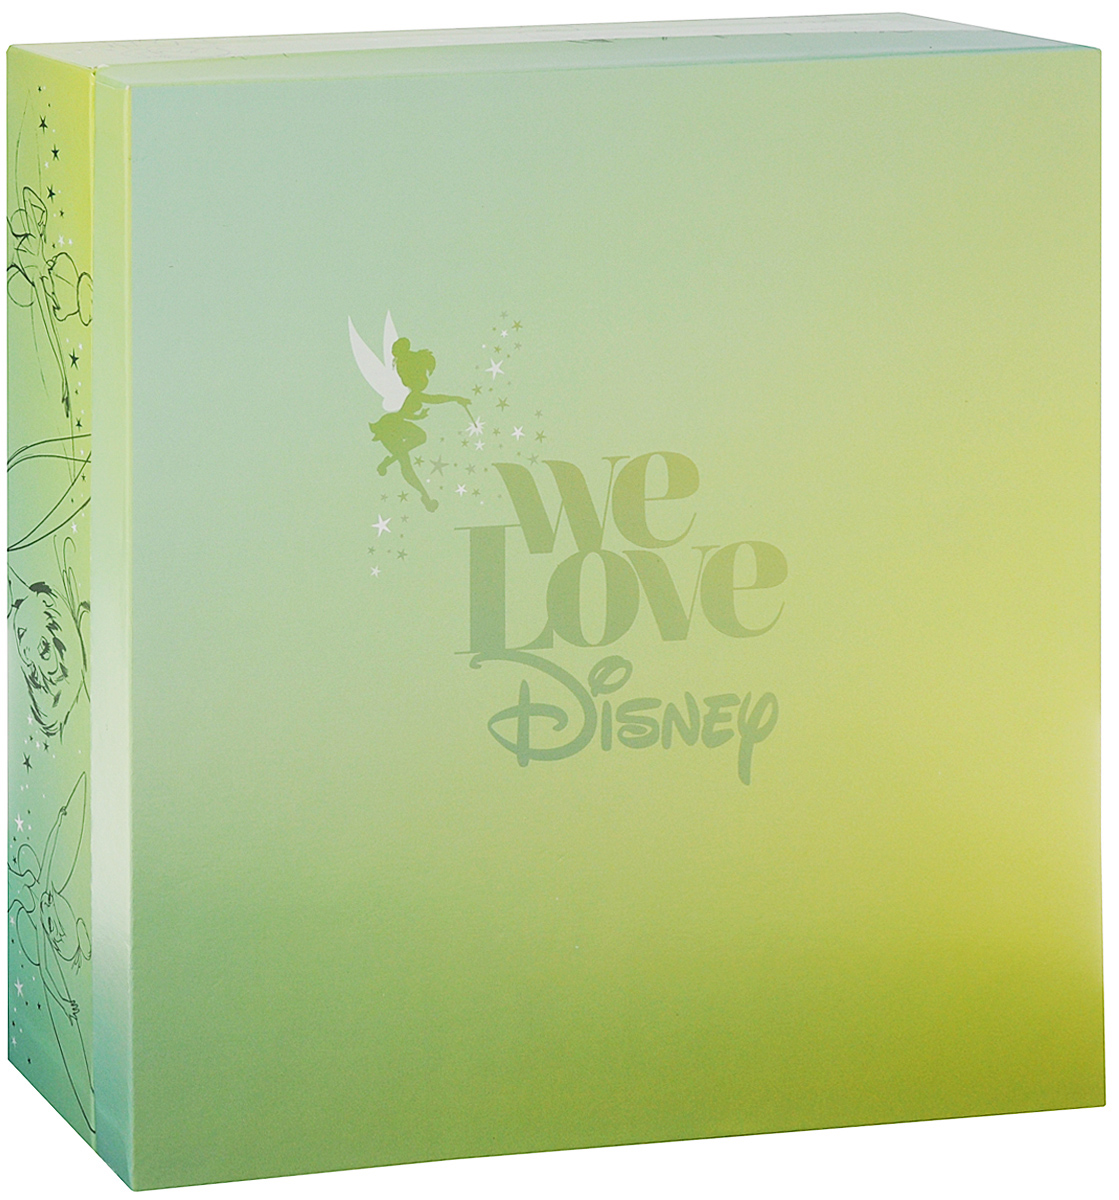 We Love Disney. Limited Edition (2 CD + DVD + 4 LP) [epcs love] art si scott eternal love limited edition poker card collection magic deck props